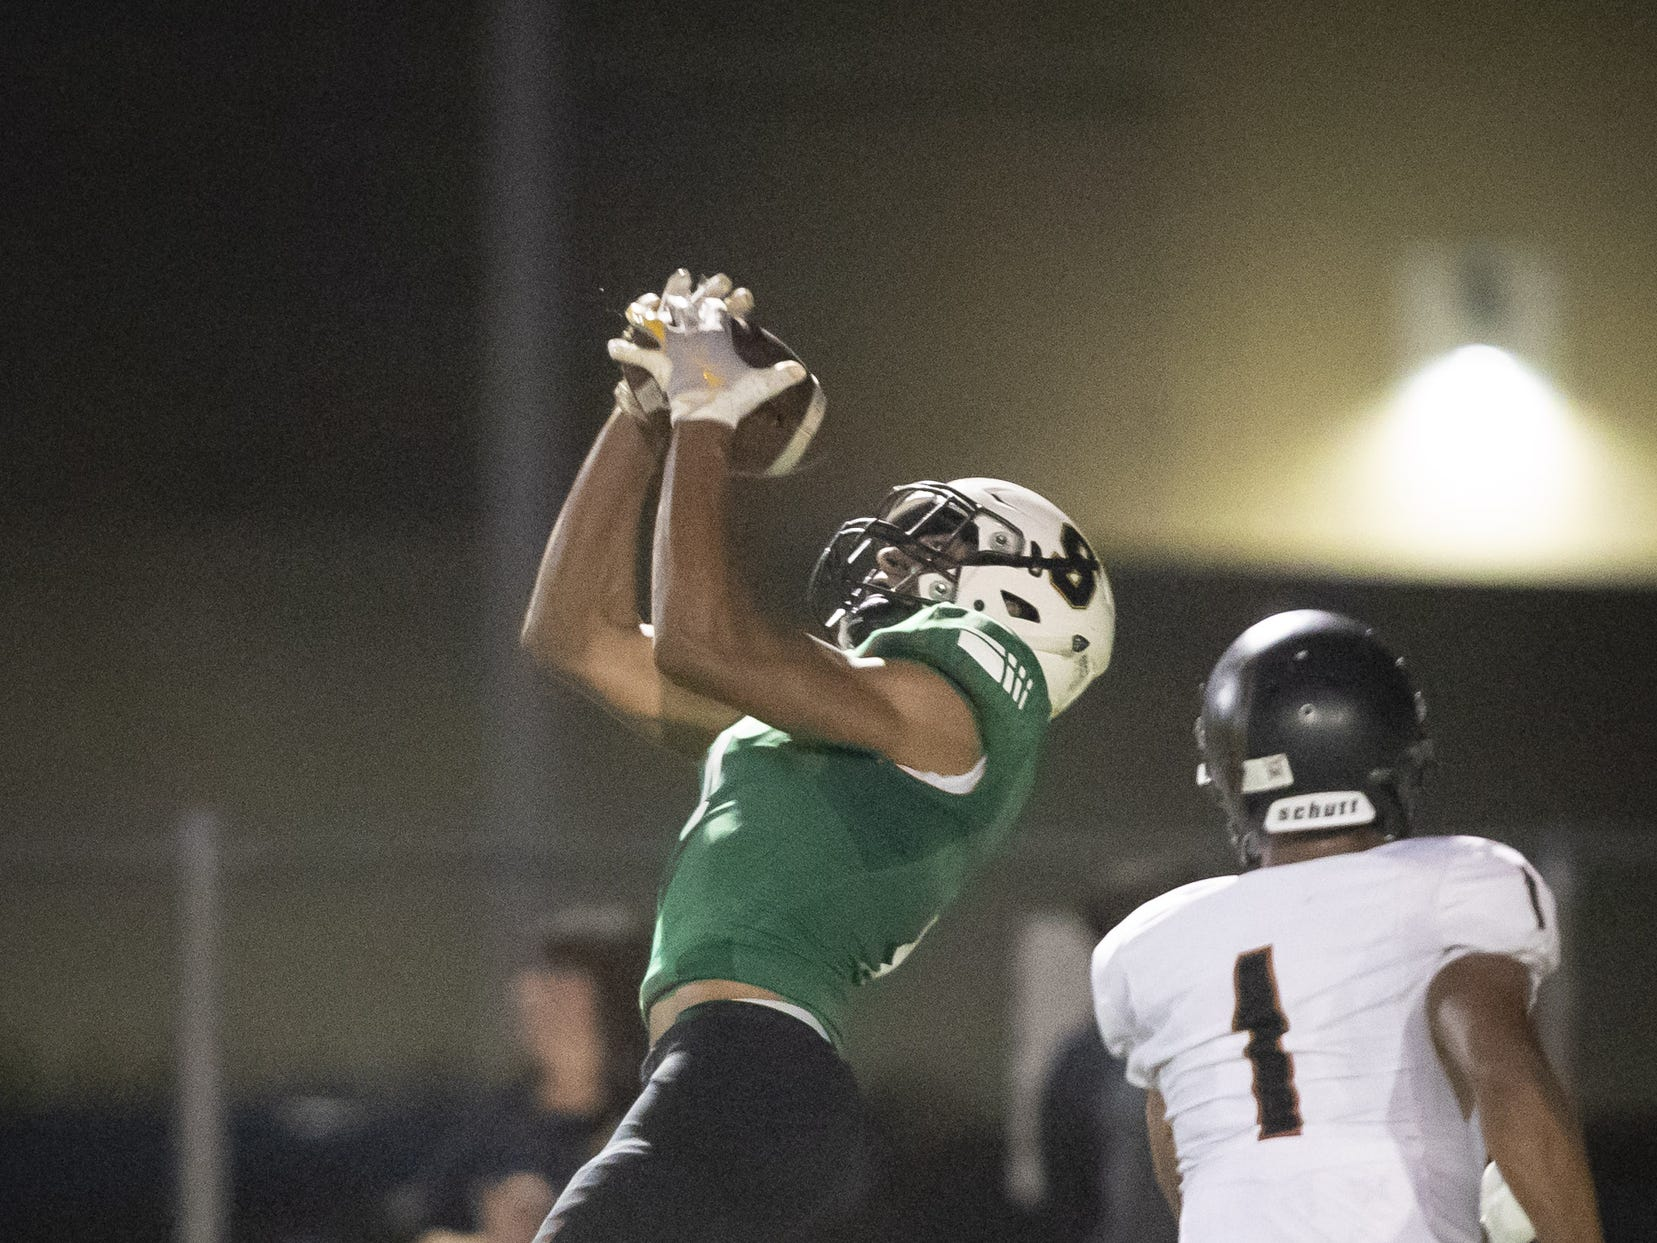 Junior wide receiver Matt Polk (4) of the Saguaro Sabercats catches a reception against sophomore free safety Steven Ortiz (1) of the Desert Edge Scorpions at Saguaro High School on Friday, September 28, 2018 in Scottsdale, Arizona. #azhsfb